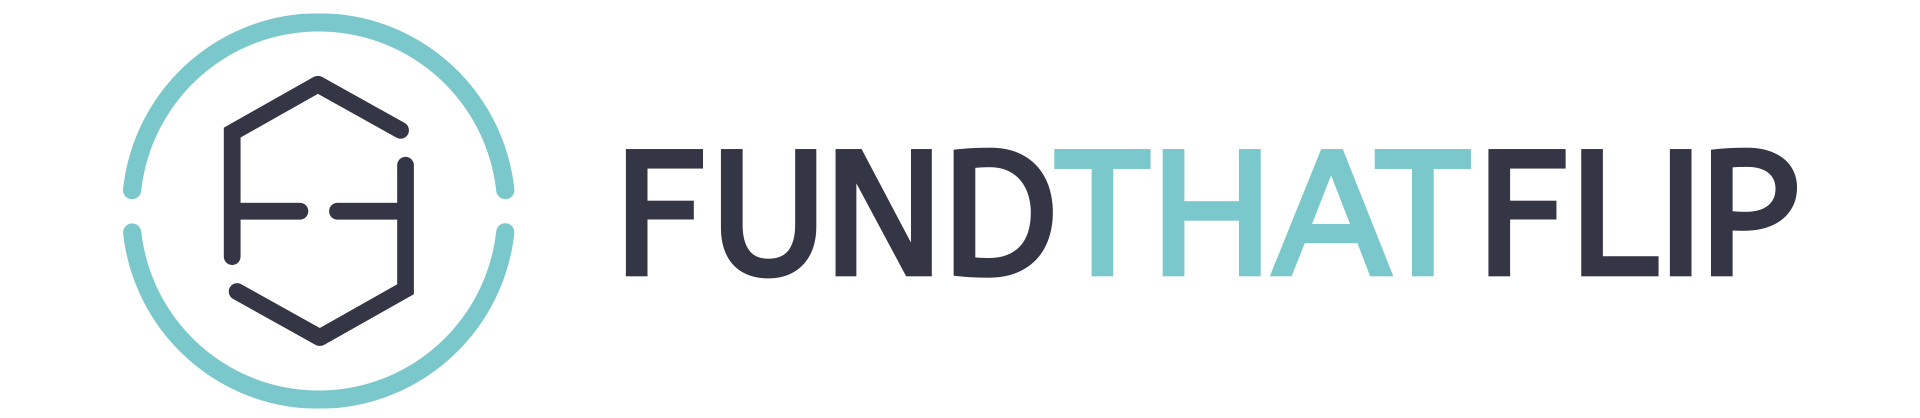 fundthatflip-logo light-1-1